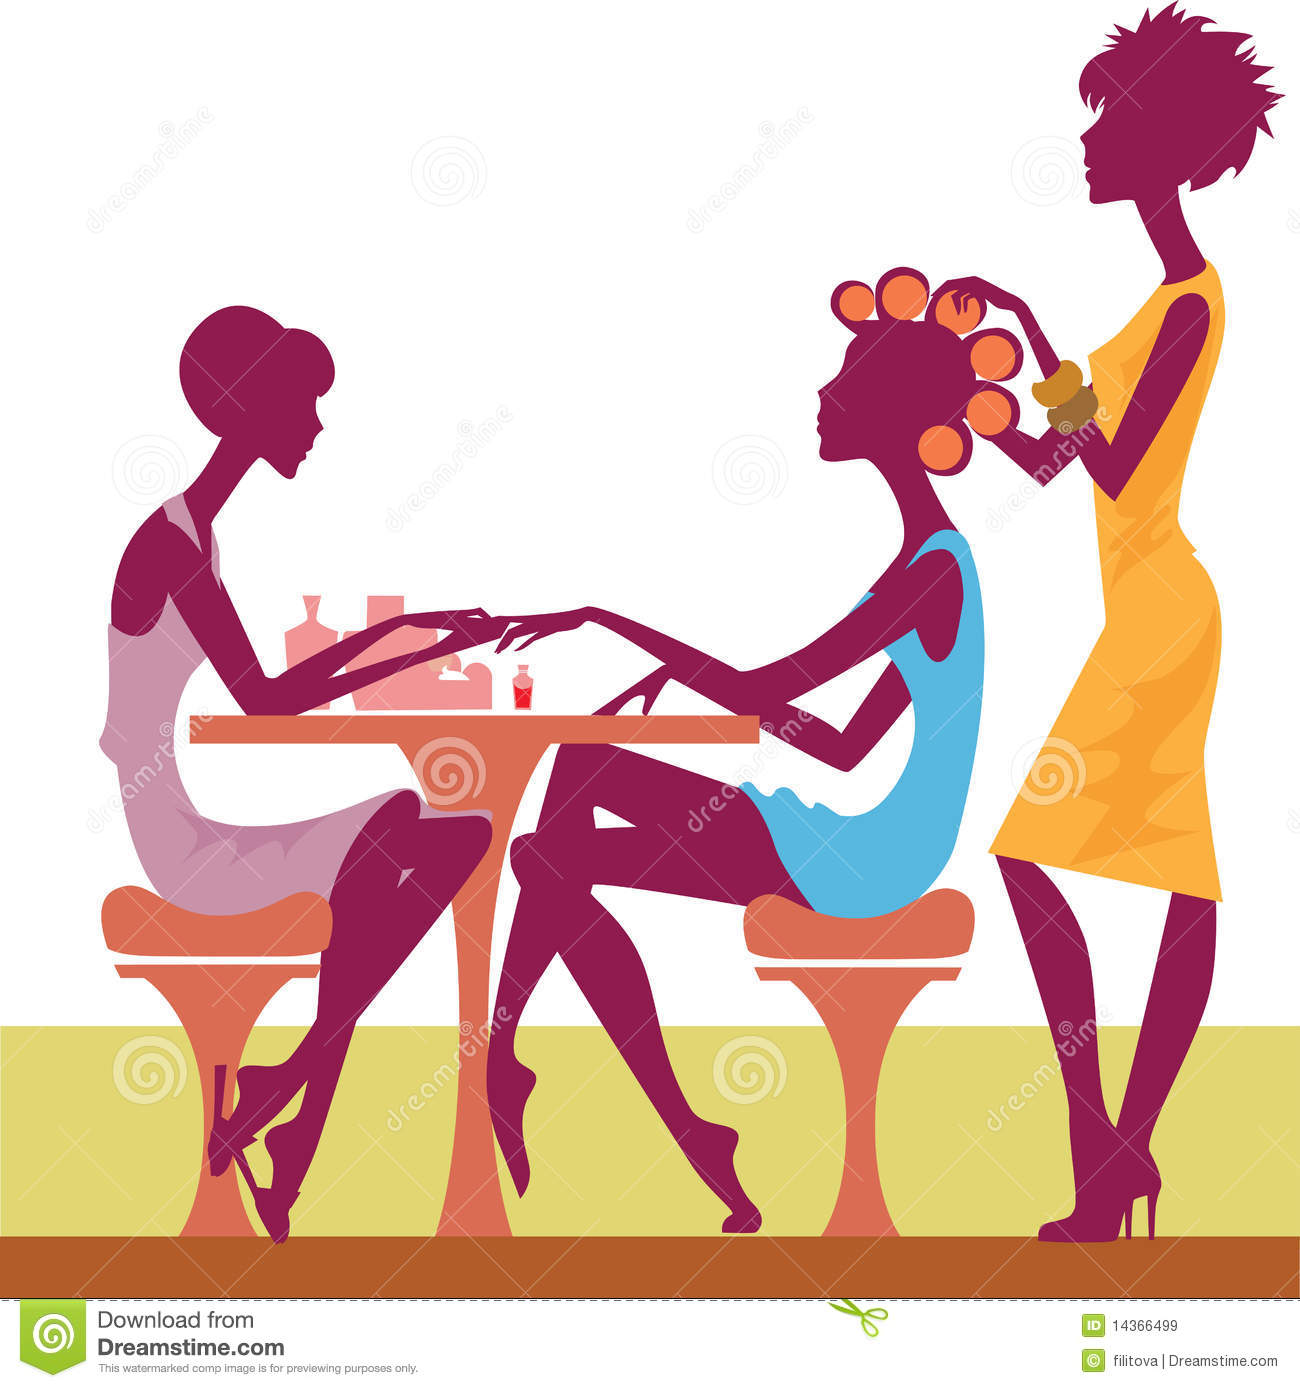 Women In A Salon Getting A Hairstyle And-Women in a salon getting a hairstyle and manicure Royalty Free Stock Images-19